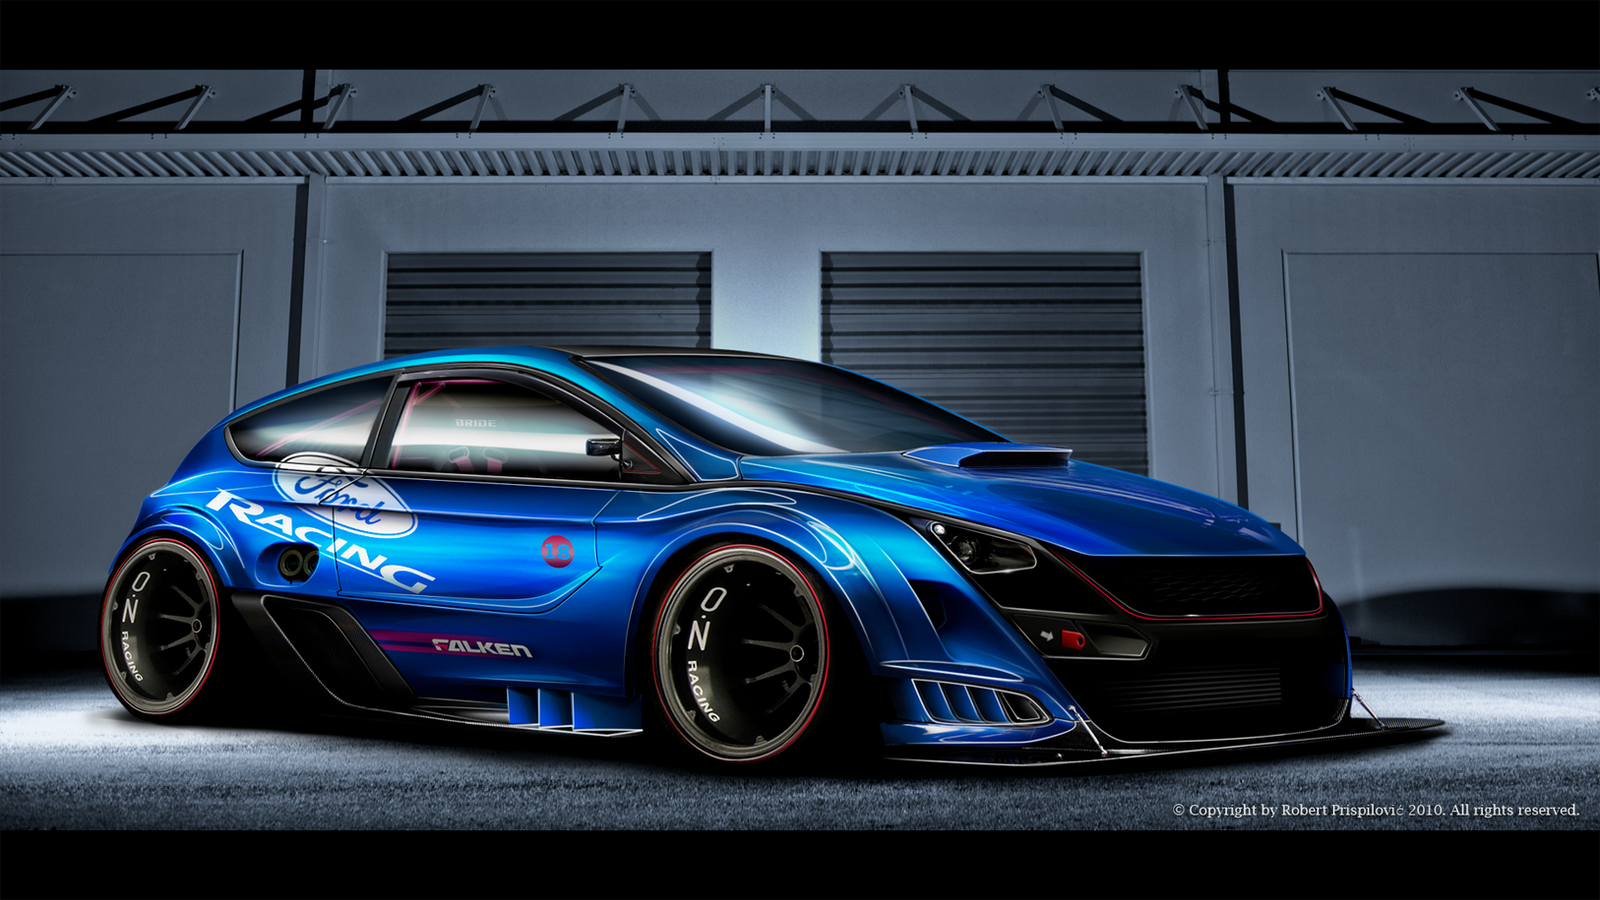 Ford Focus Rs Limited Edition By Ribadesign On Deviantart